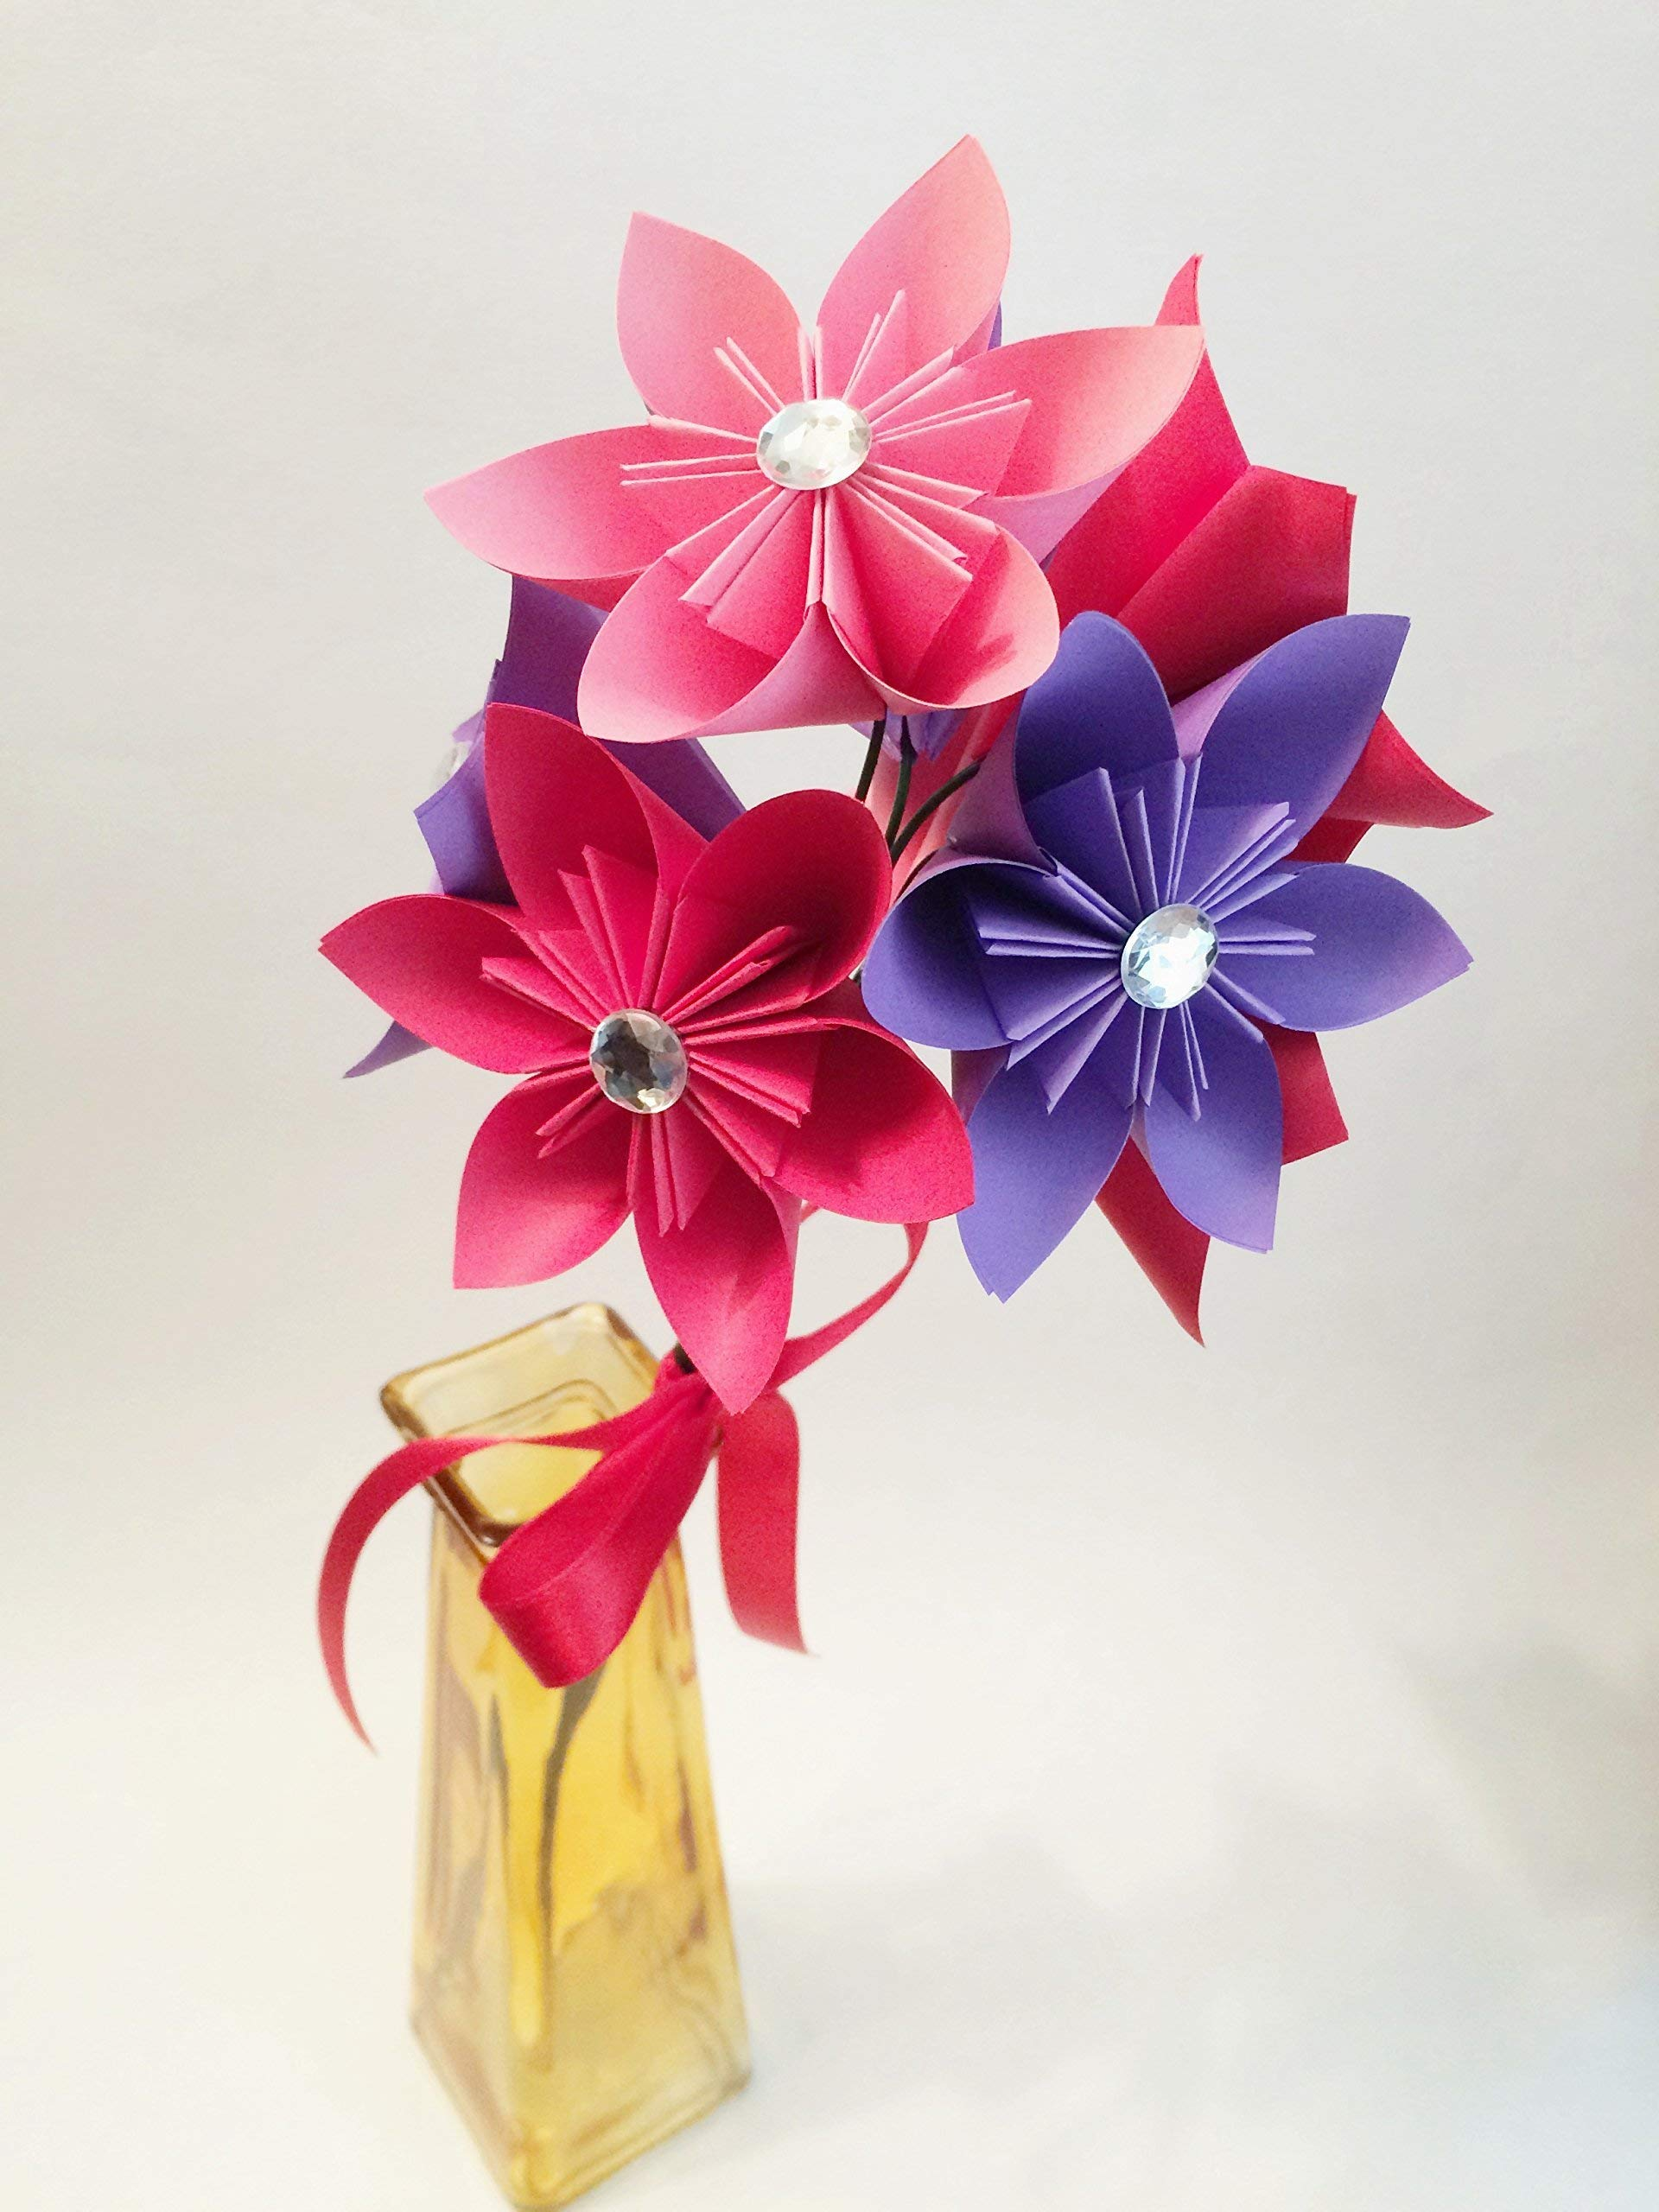 Set of 8 Bright Paper Flowers- Small bouquet of daisies, handmade anniversary gift, origami, red, purple pink, spring wedding, baby shower, party decor